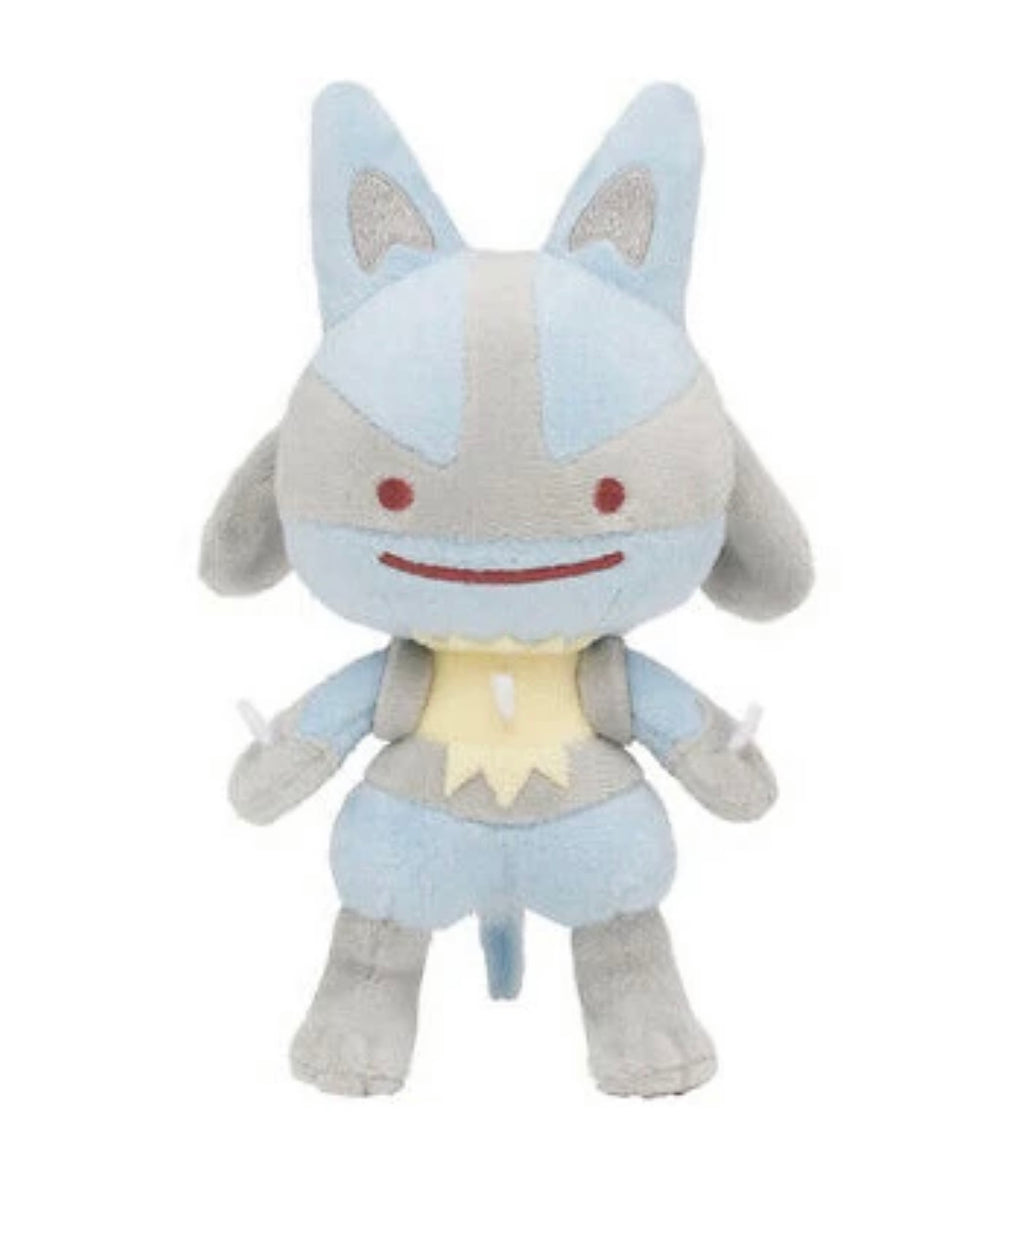 Pokémon Ditto Lucario Plush